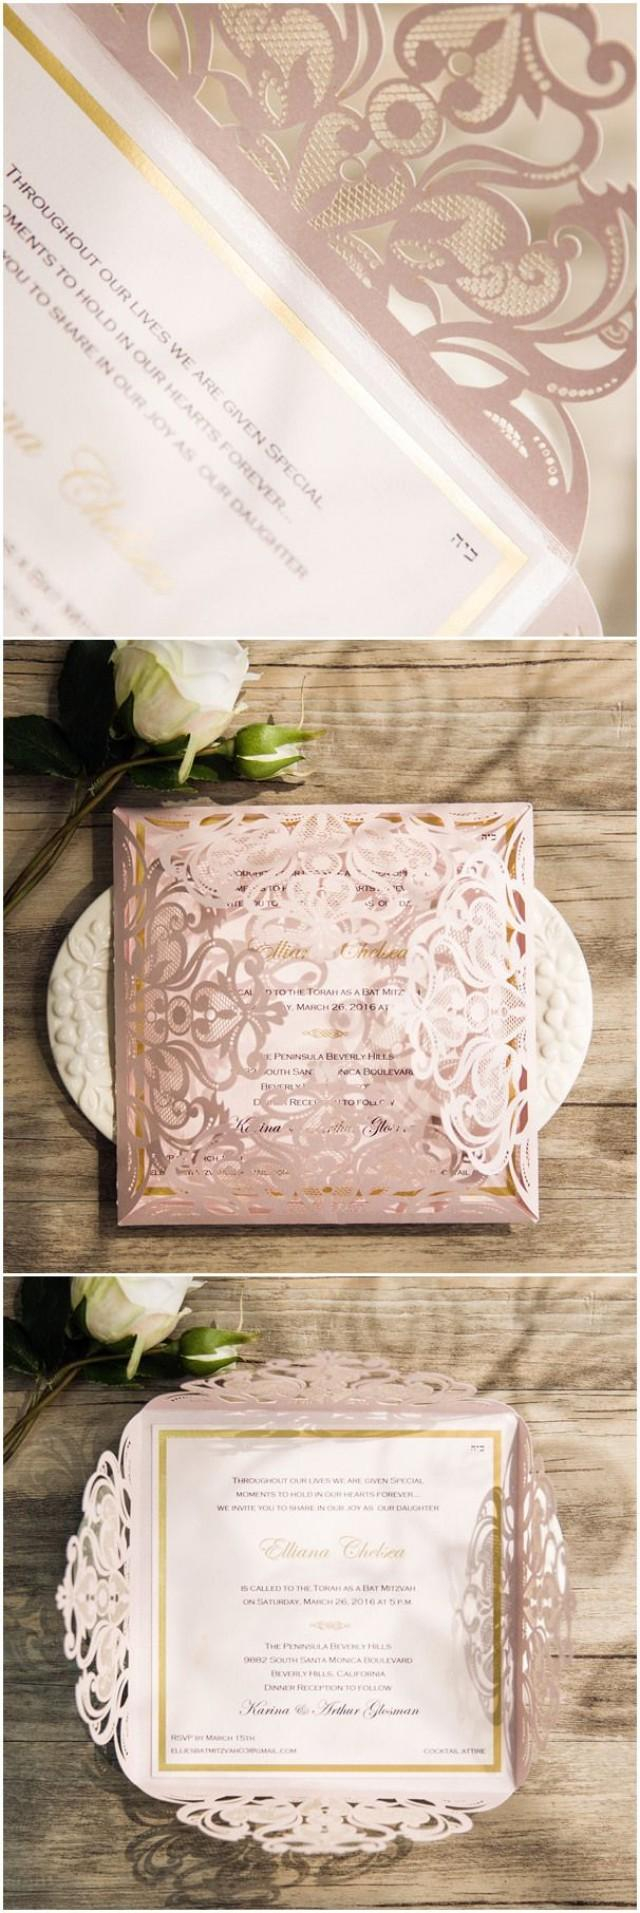 Foil Stamped Wedding Invitations Romantic Blush Pink Laser Cut Gold Foil Stamped Wedding Invitations